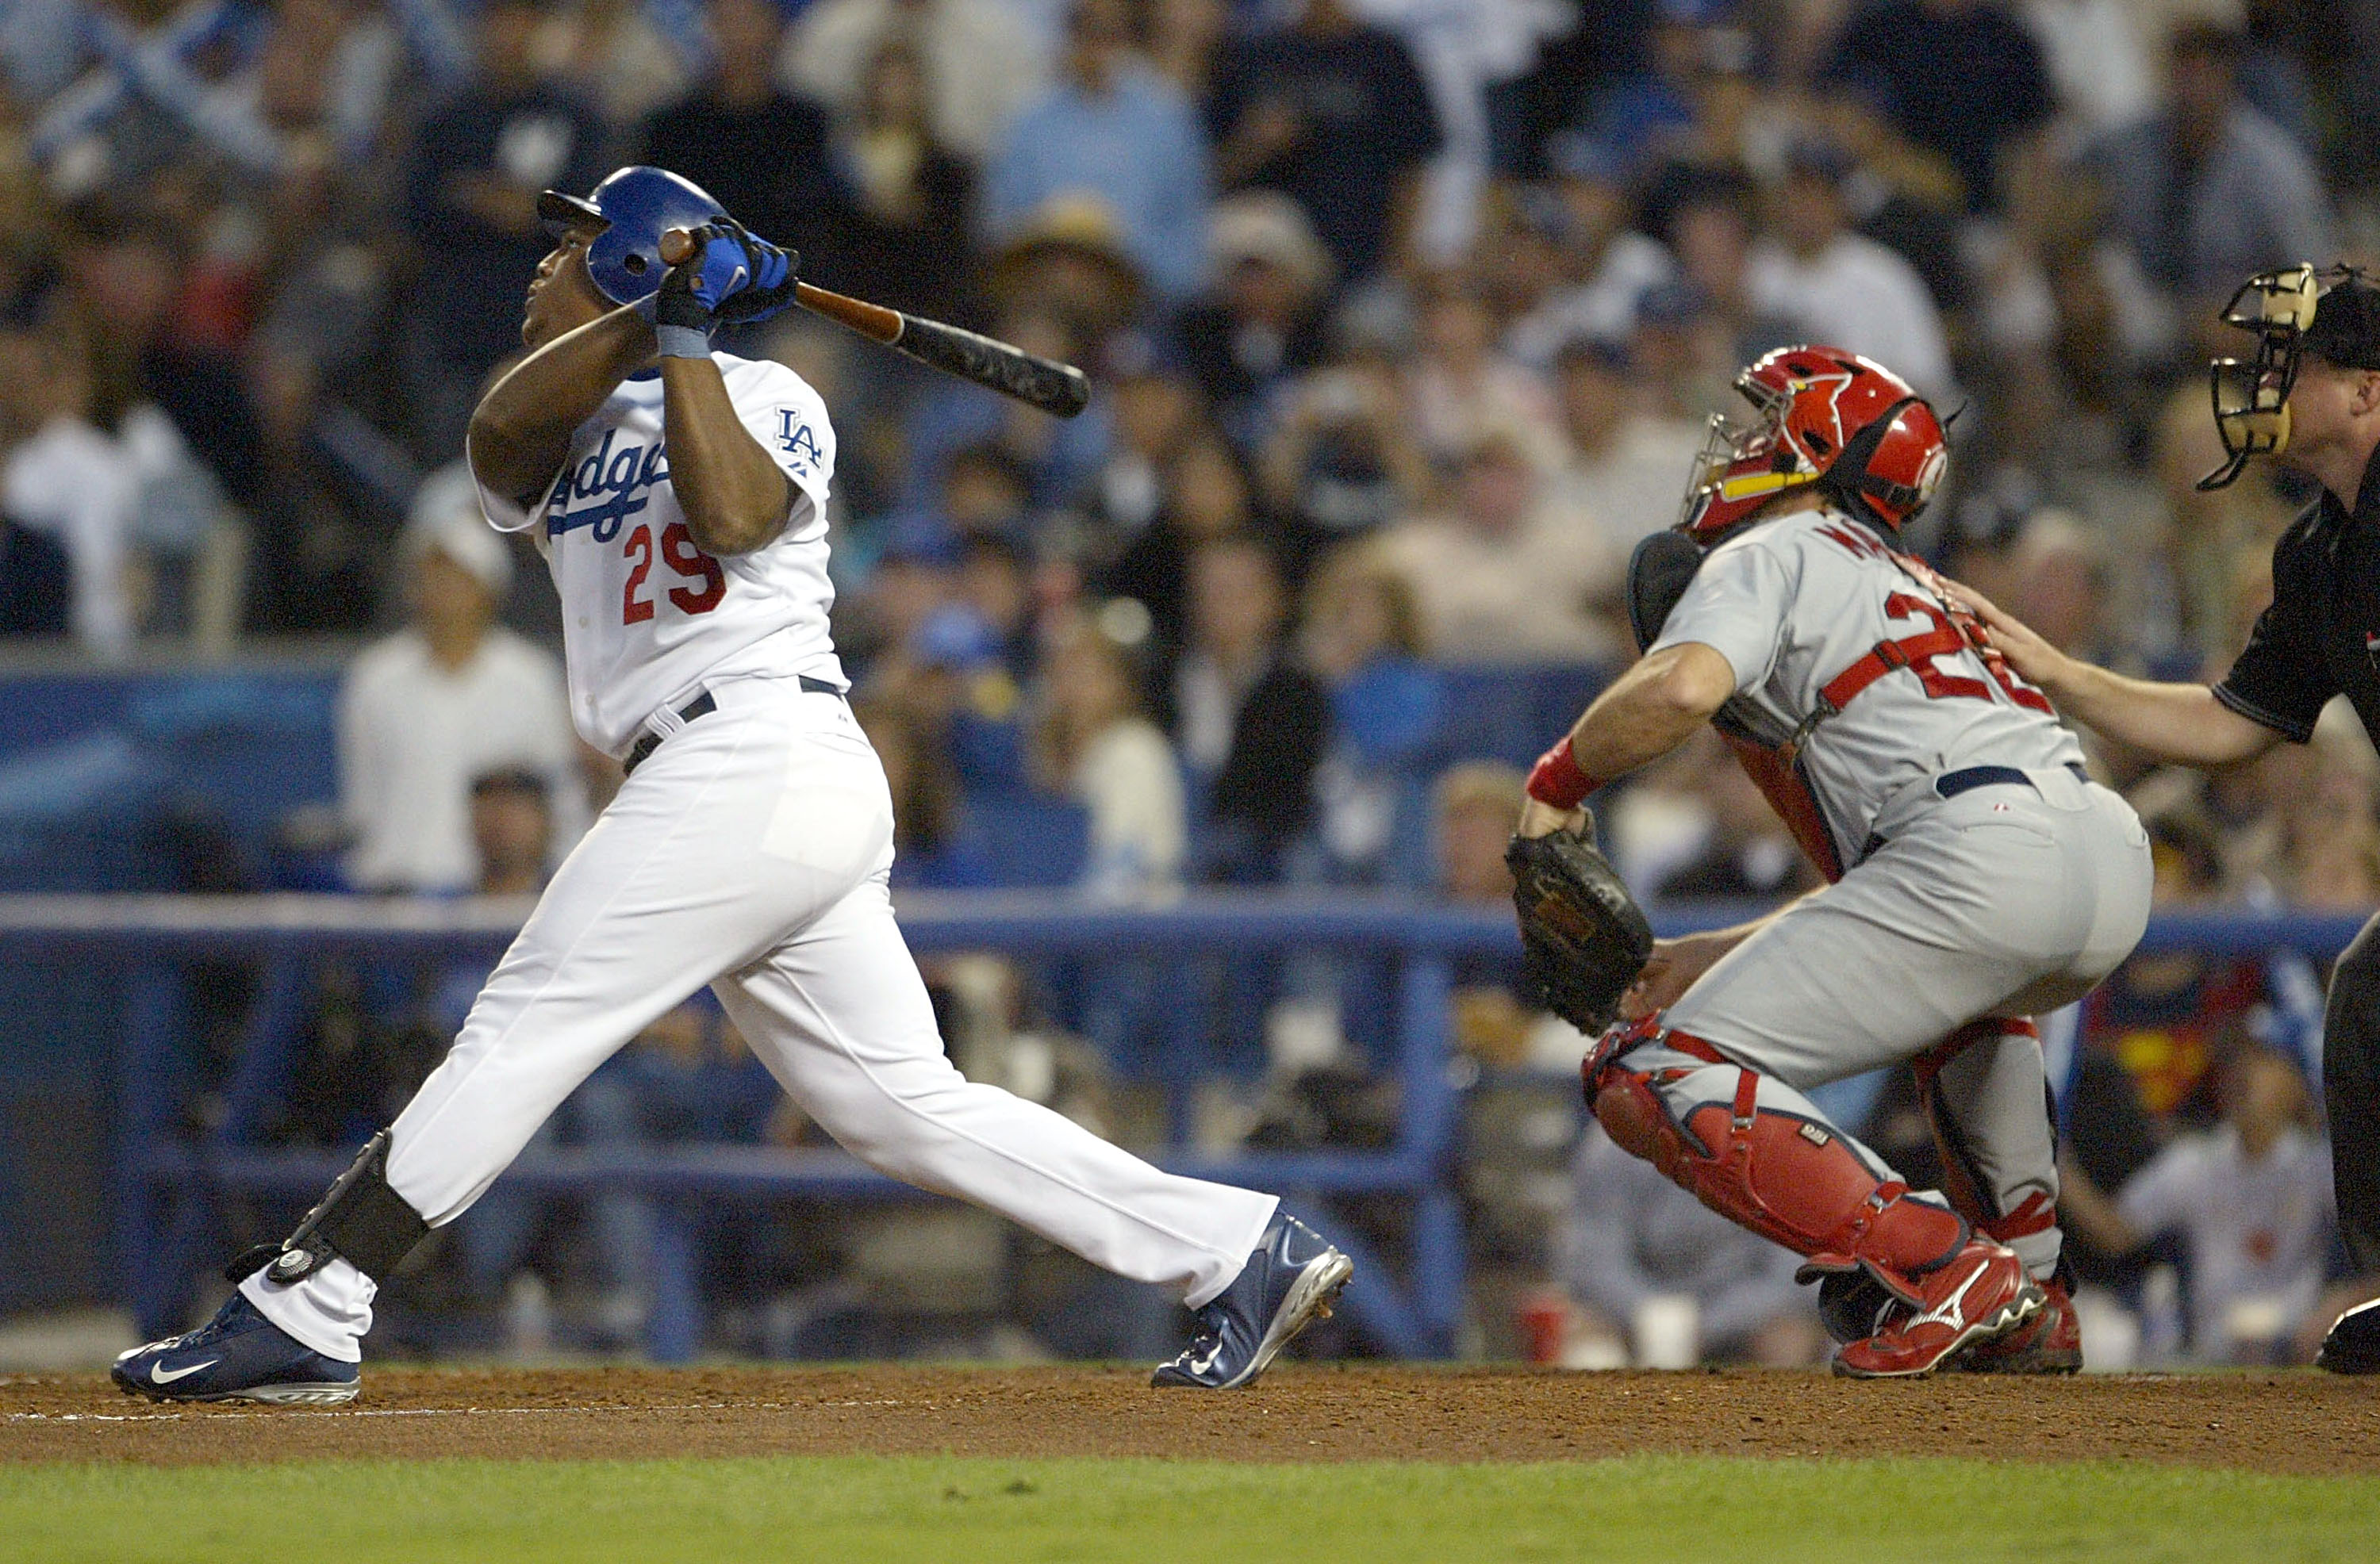 LOS ANGELES - OCTOBER 10:  Adrian Beltre #29 of the Los Angeles Dodgers hits a sacrifice fly that allowed Jayson Werth #28 to score in the third inning of the National League Division Series, Game Four on October 10, 2004 at Dodger Stadium in Los Angeles,